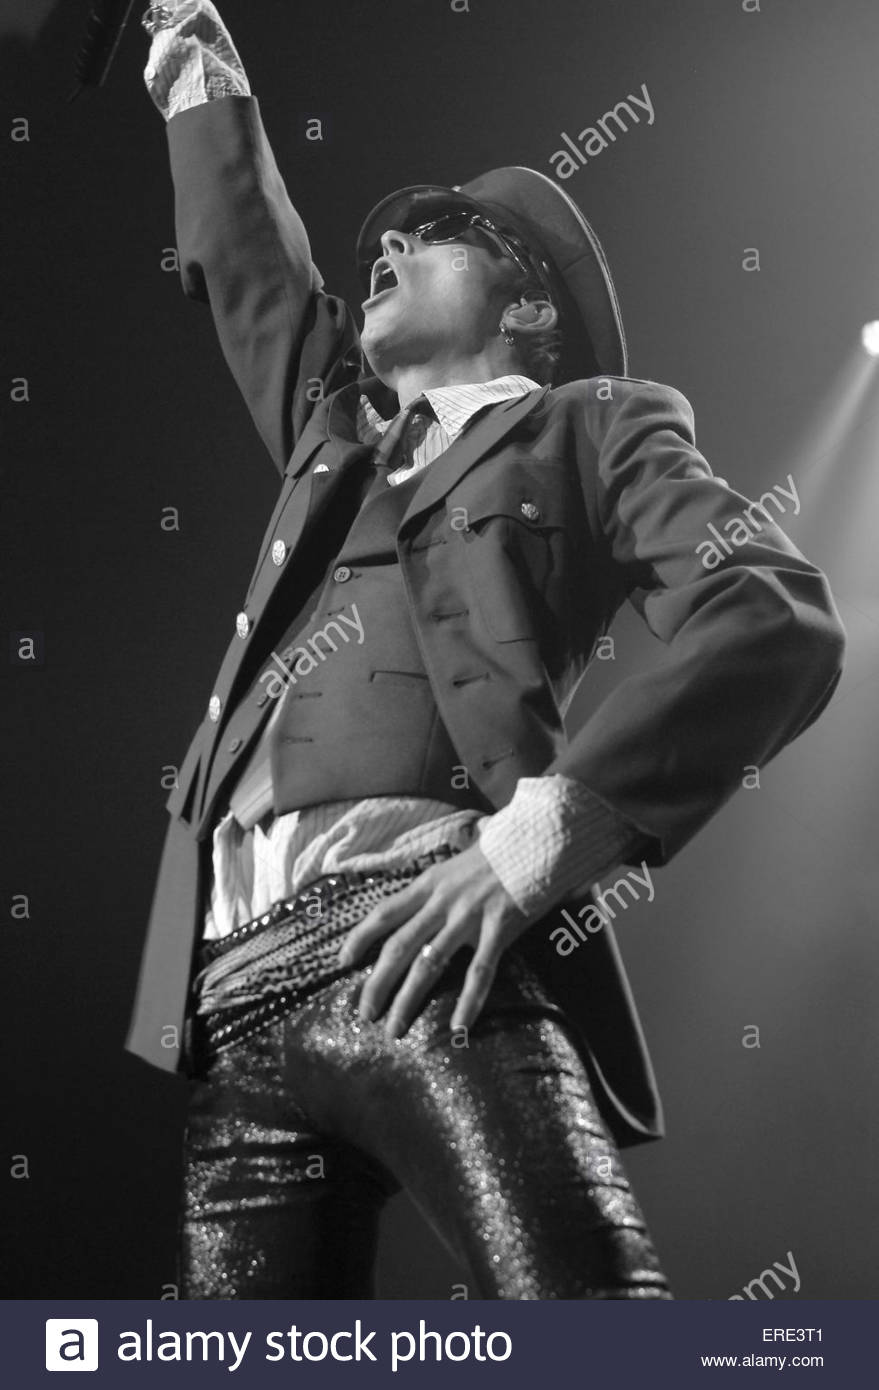 Scott Weiland of Velvet Revolver performinf in Brixton London January 2005 - Stock Image